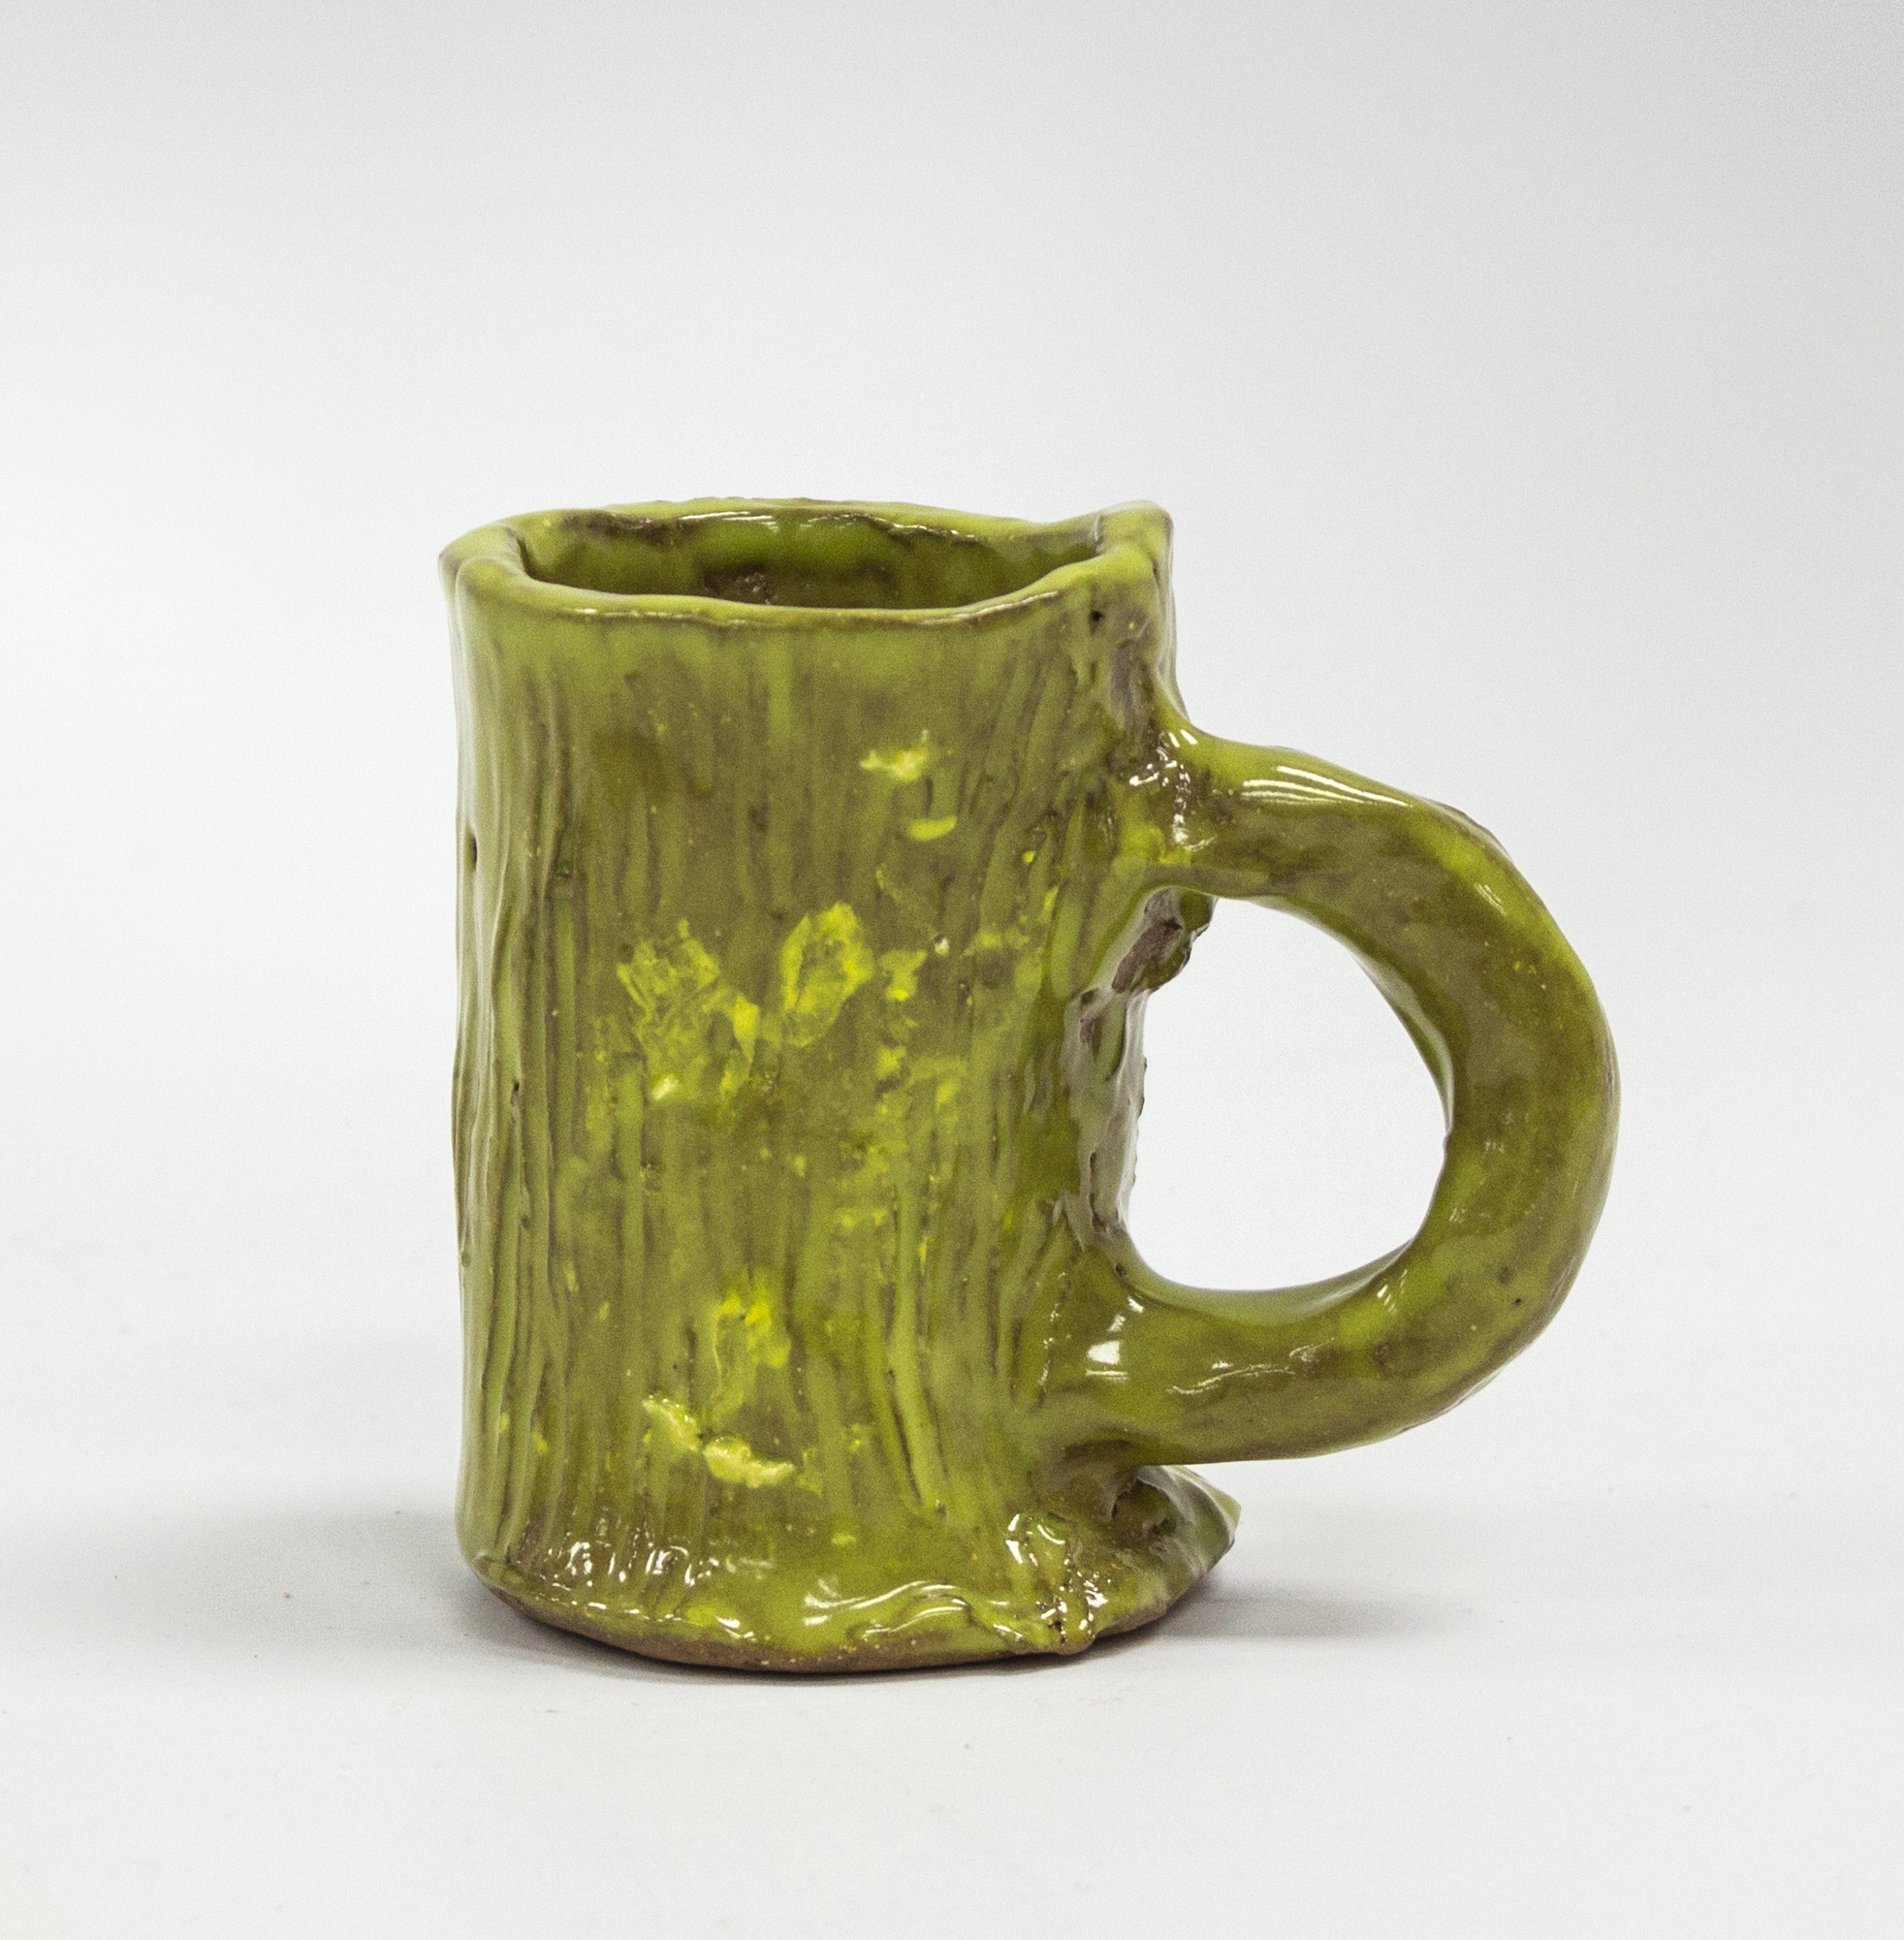 "Green Mug.  Earthenware with commercial glazes. 2.5"" x 2.375"" x 3.375""."